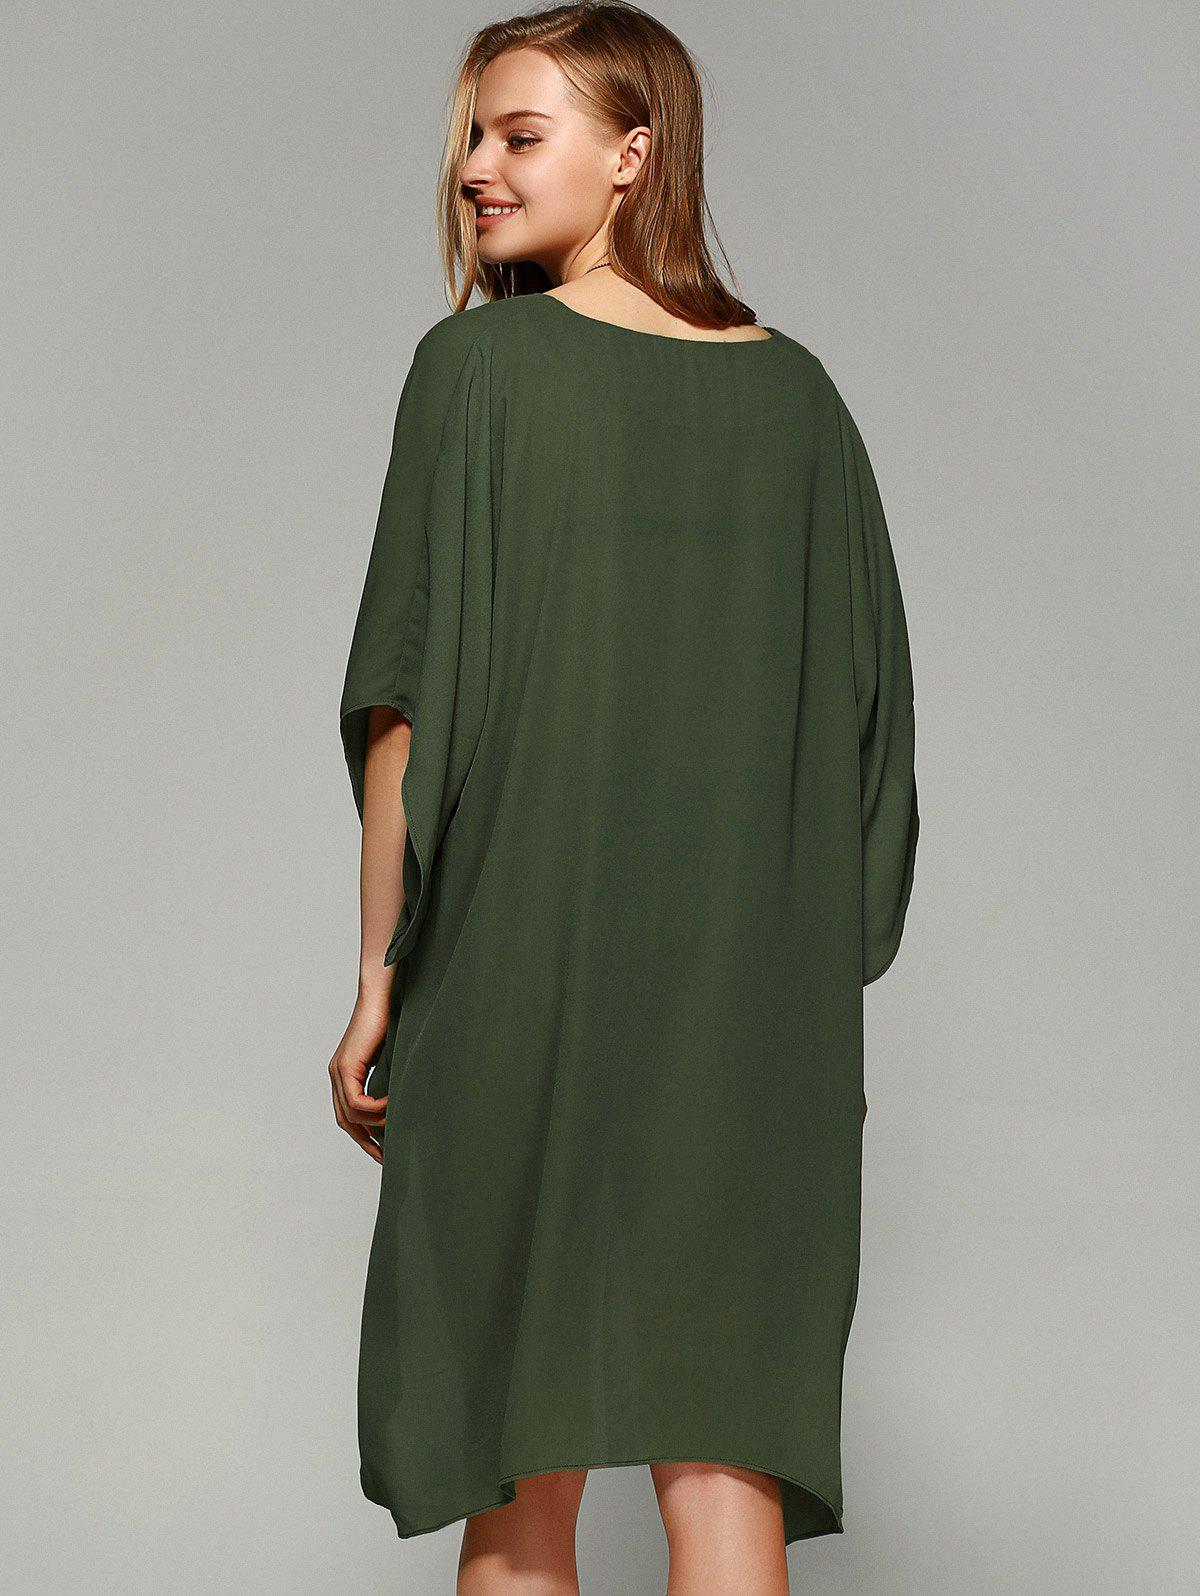 Novelty Batwing Sleeve High Low Hem Blouse - FLAX GREEN M